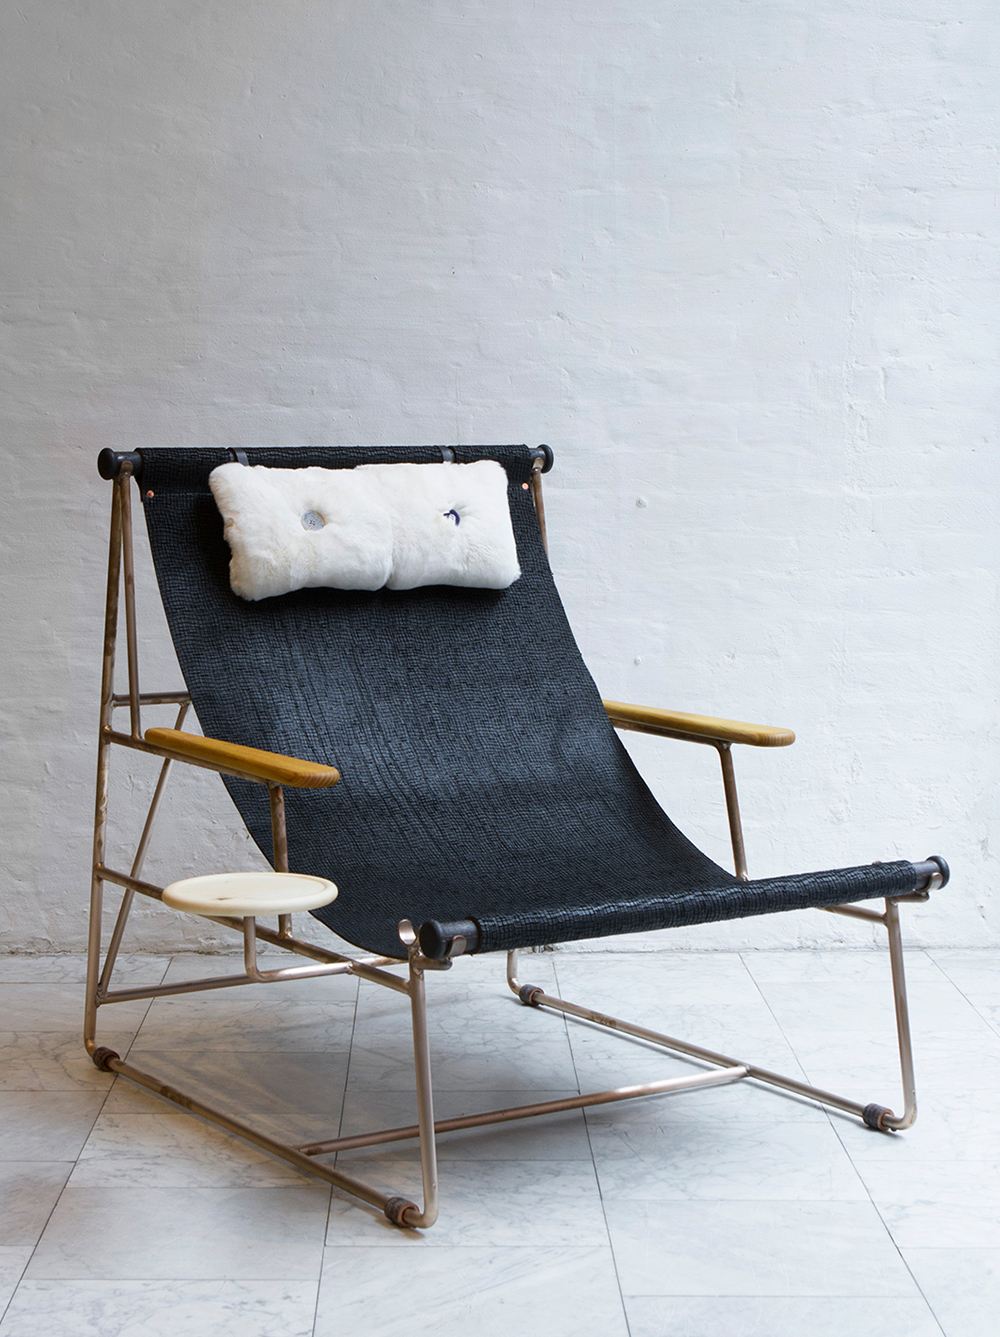 (Leather Deck Chair By BDDW)